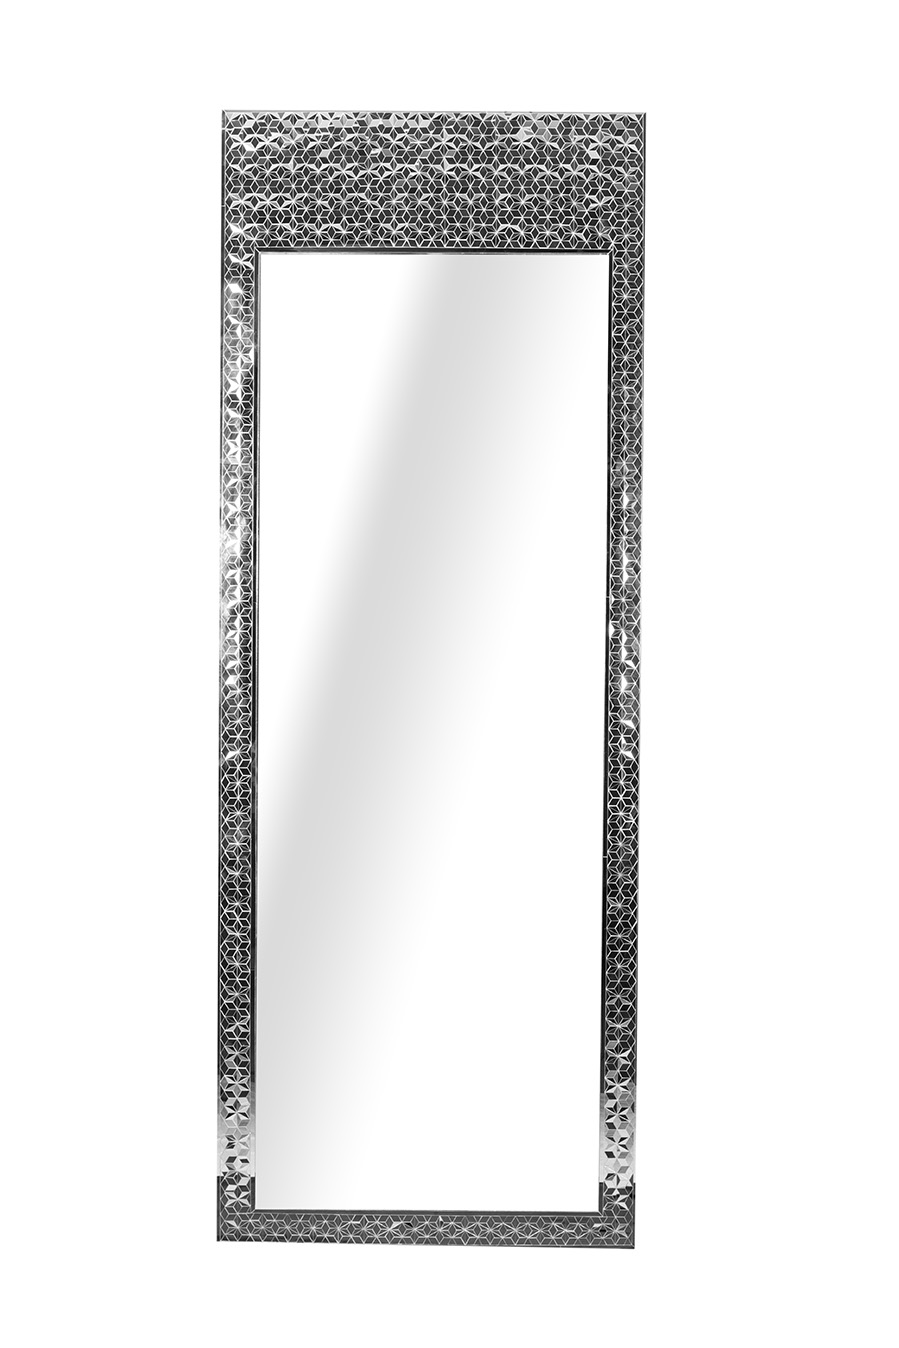 partow standing mirror